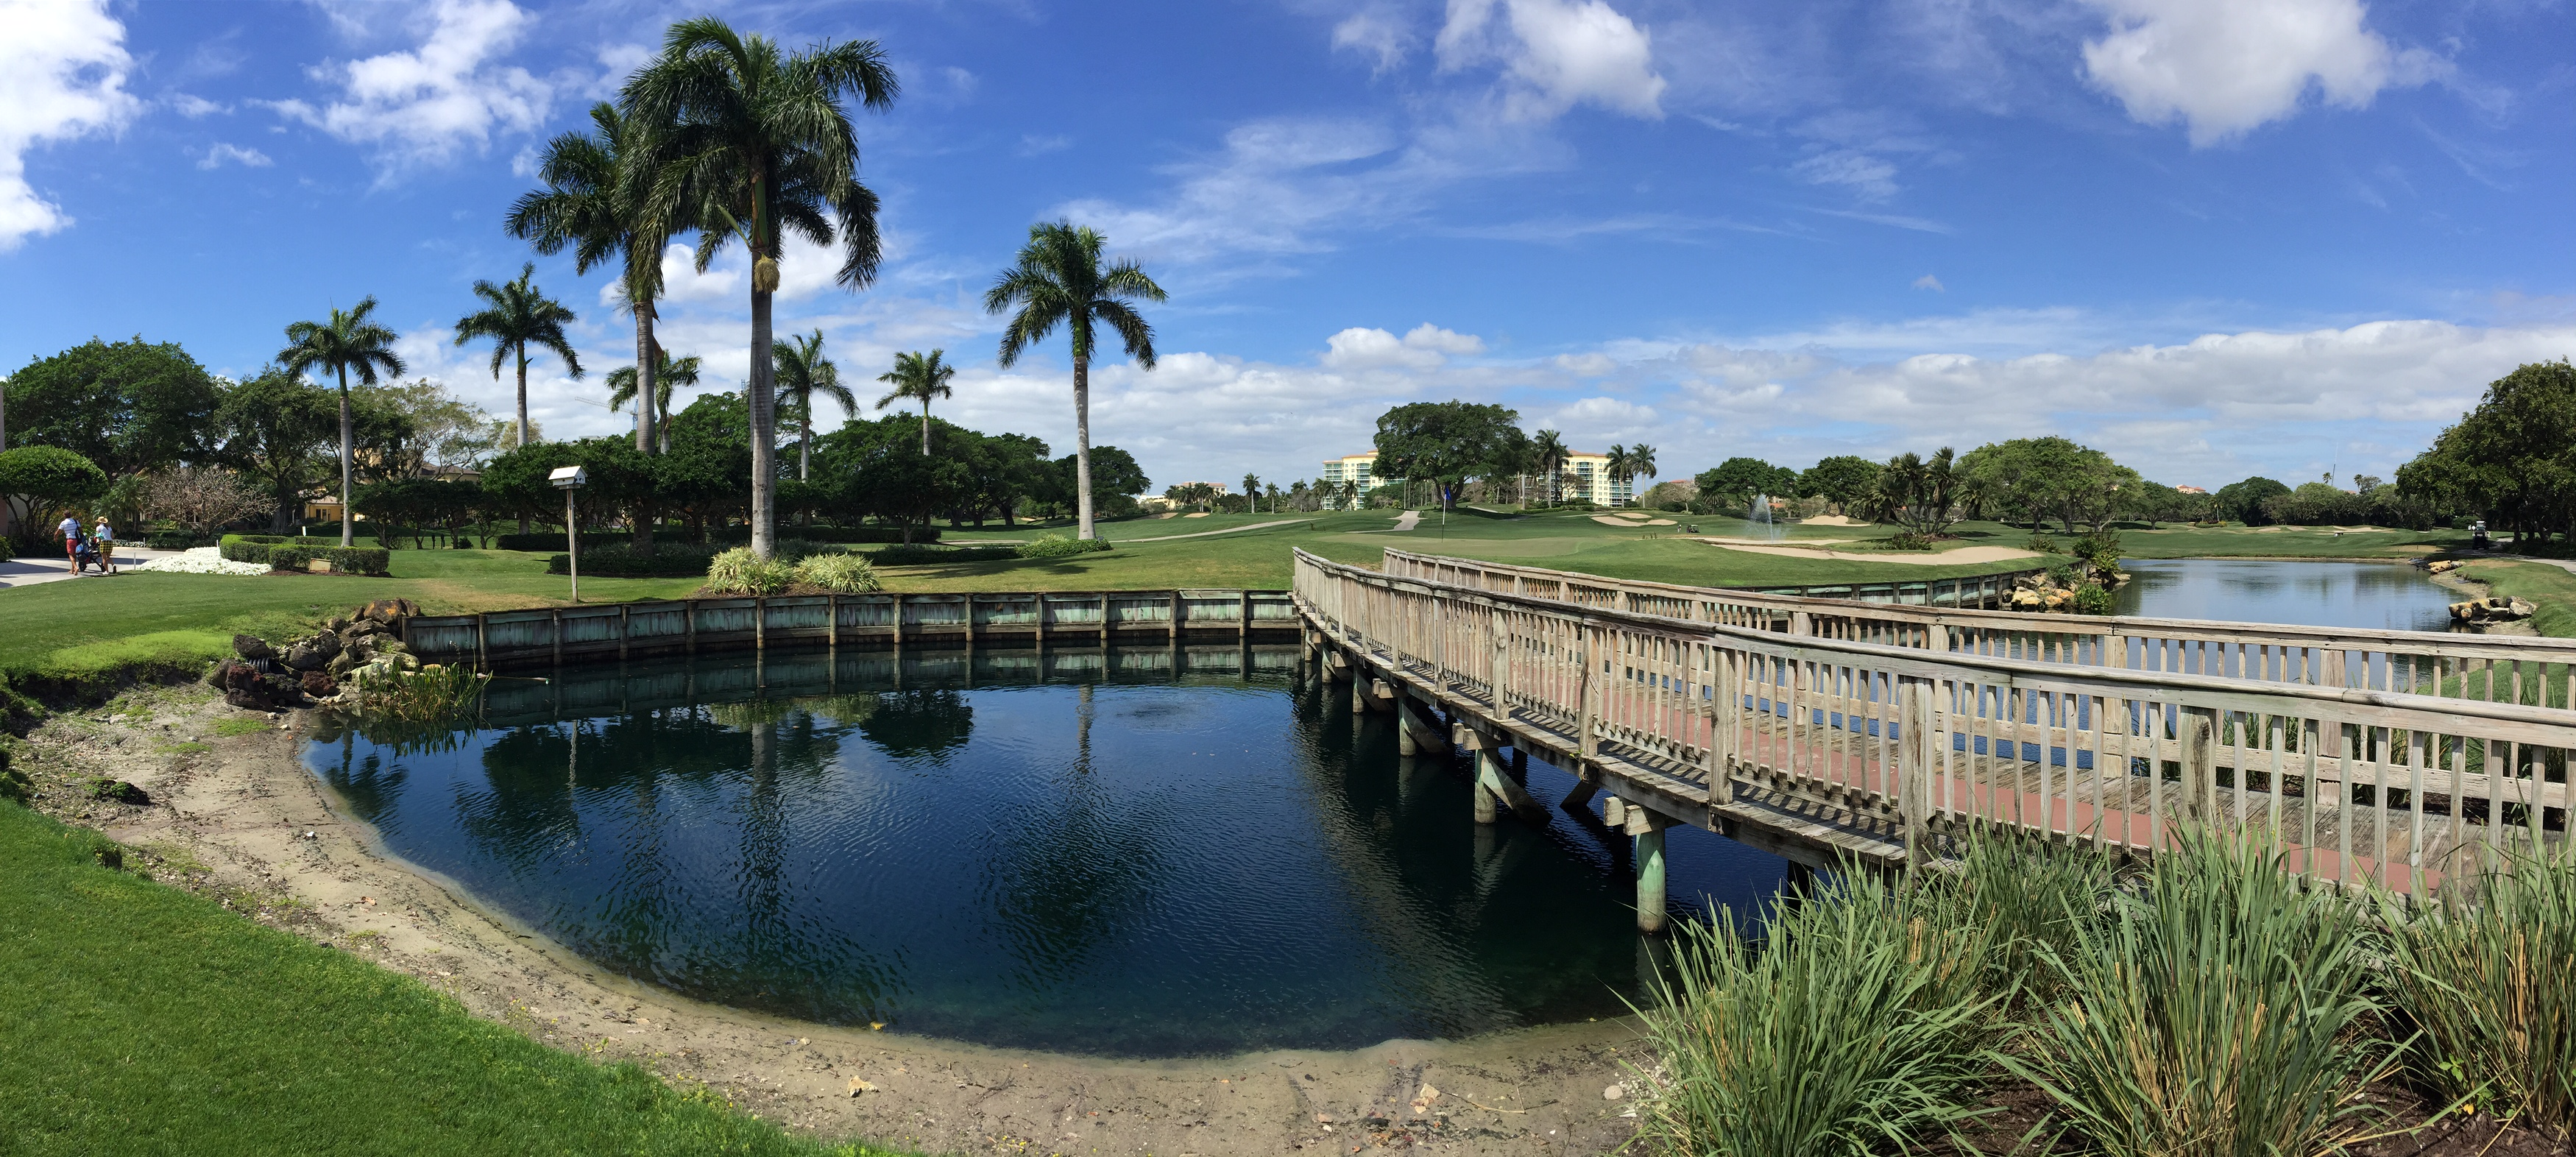 Boca Resort Club - Grounds Championship Golf Course